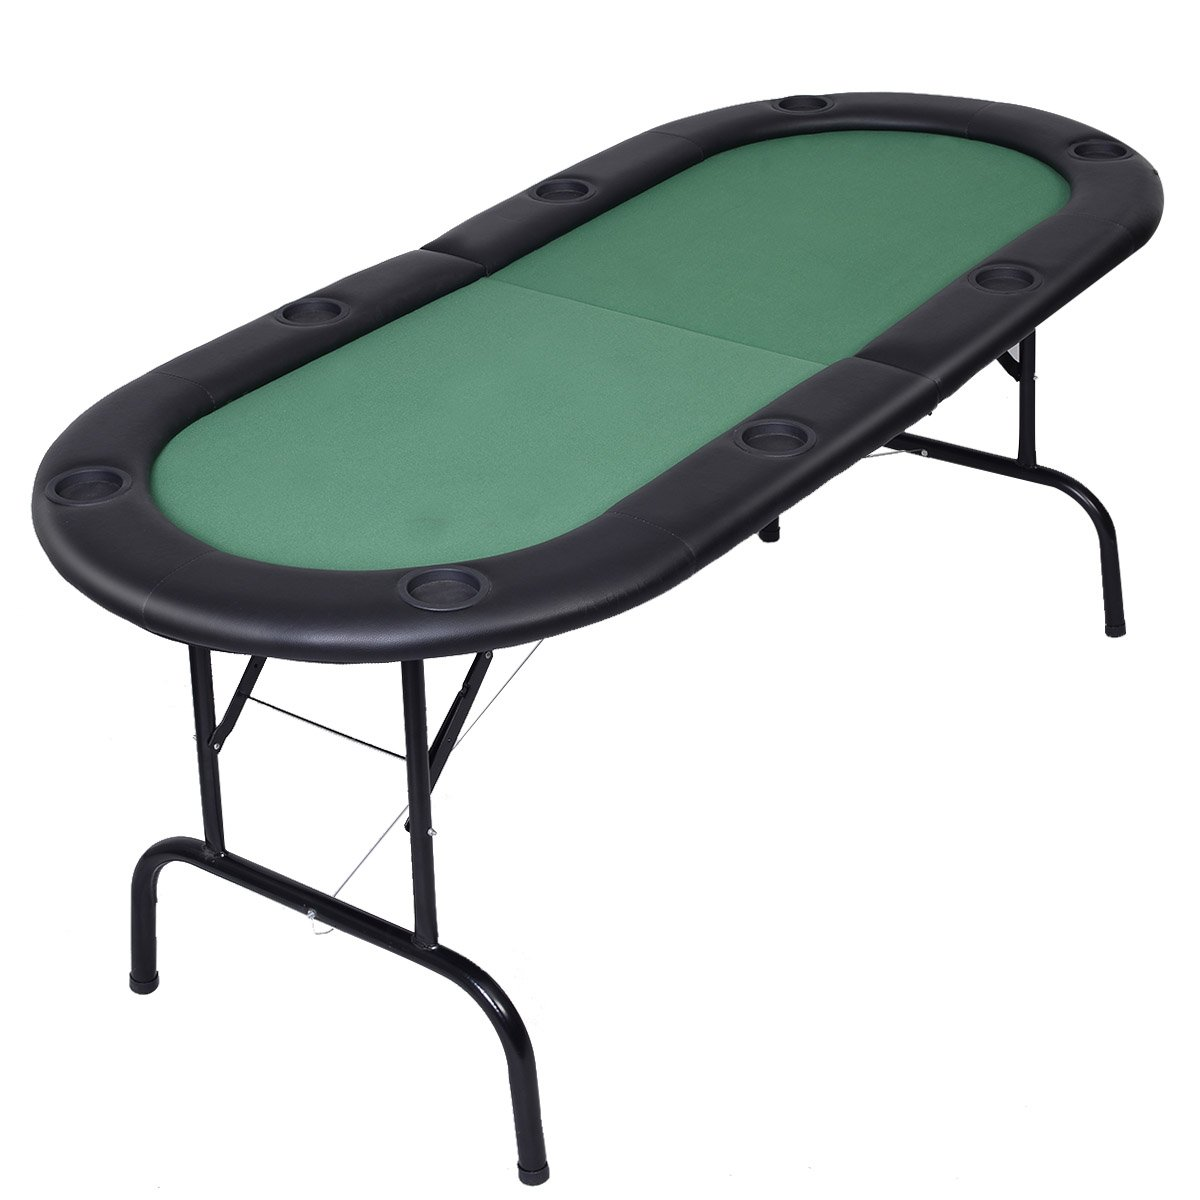 Folding poker table australia casino louisiana shreveport